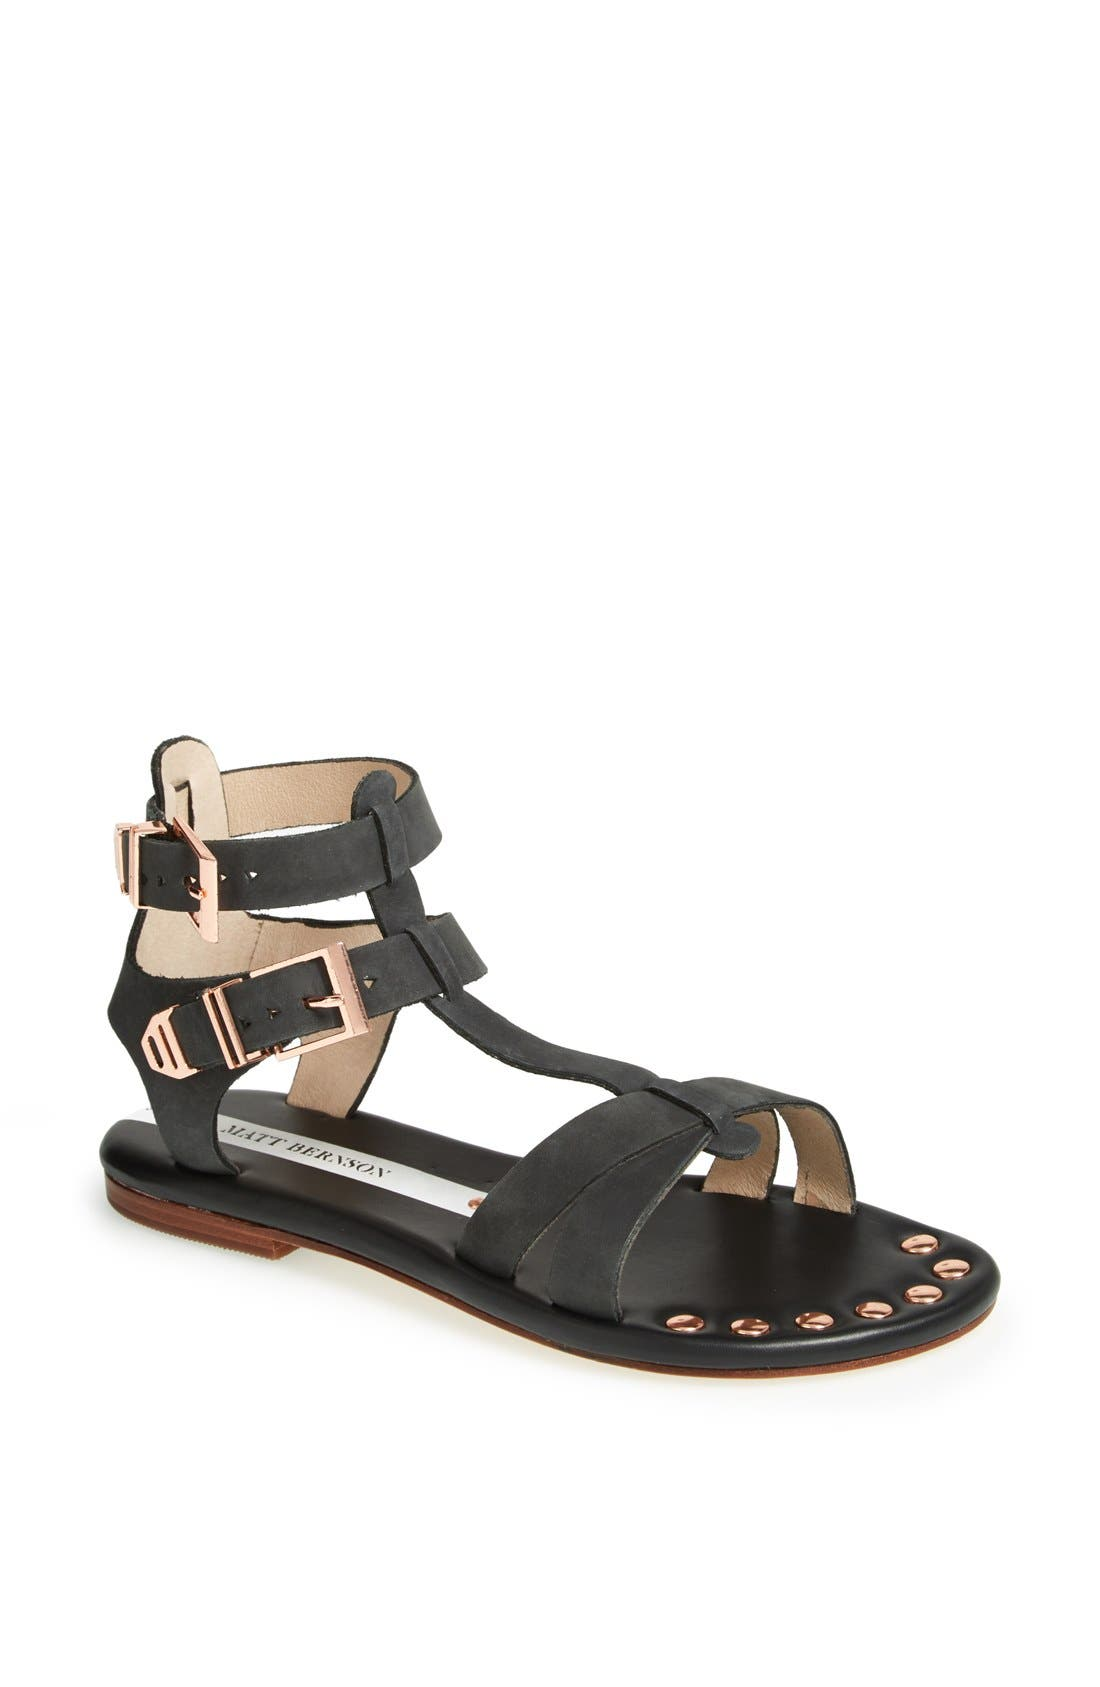 Alternate Image 1 Selected - Matt Bernson 'KM' Gladiator Sandal